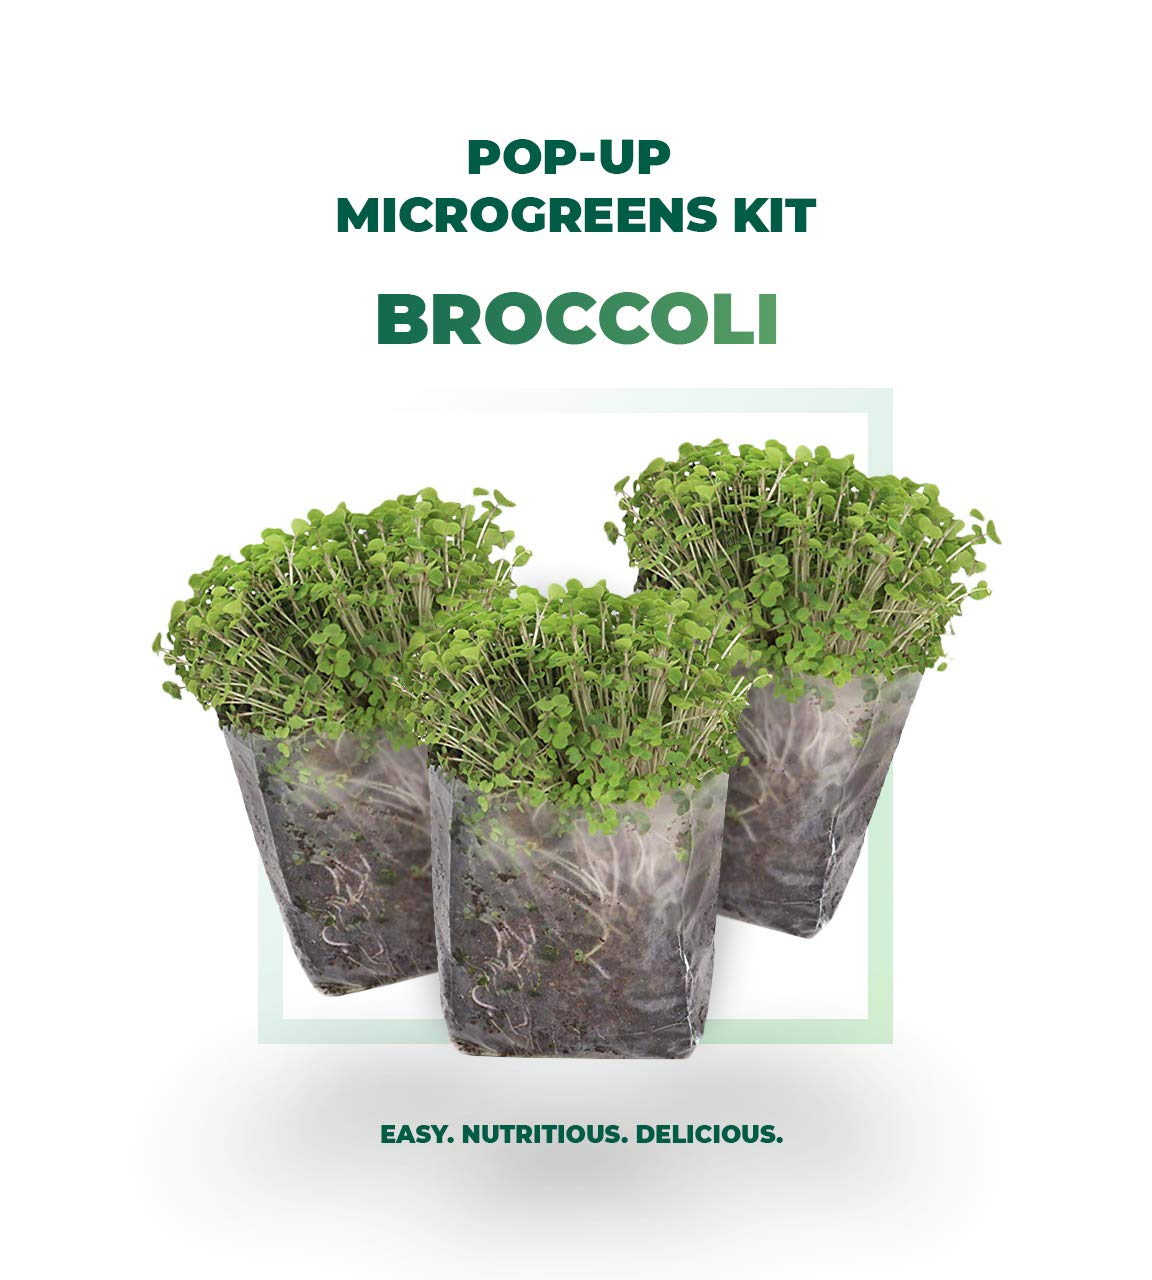 Indoor Microgreens Seed Starter Vegan Growing Kit – Includes Broccoli Seeds, 3qts Organic Fiber Potting Soil and Pop-Up Bag – Add Water and Grow Vegetables for Healthy Salads – by Window Garden